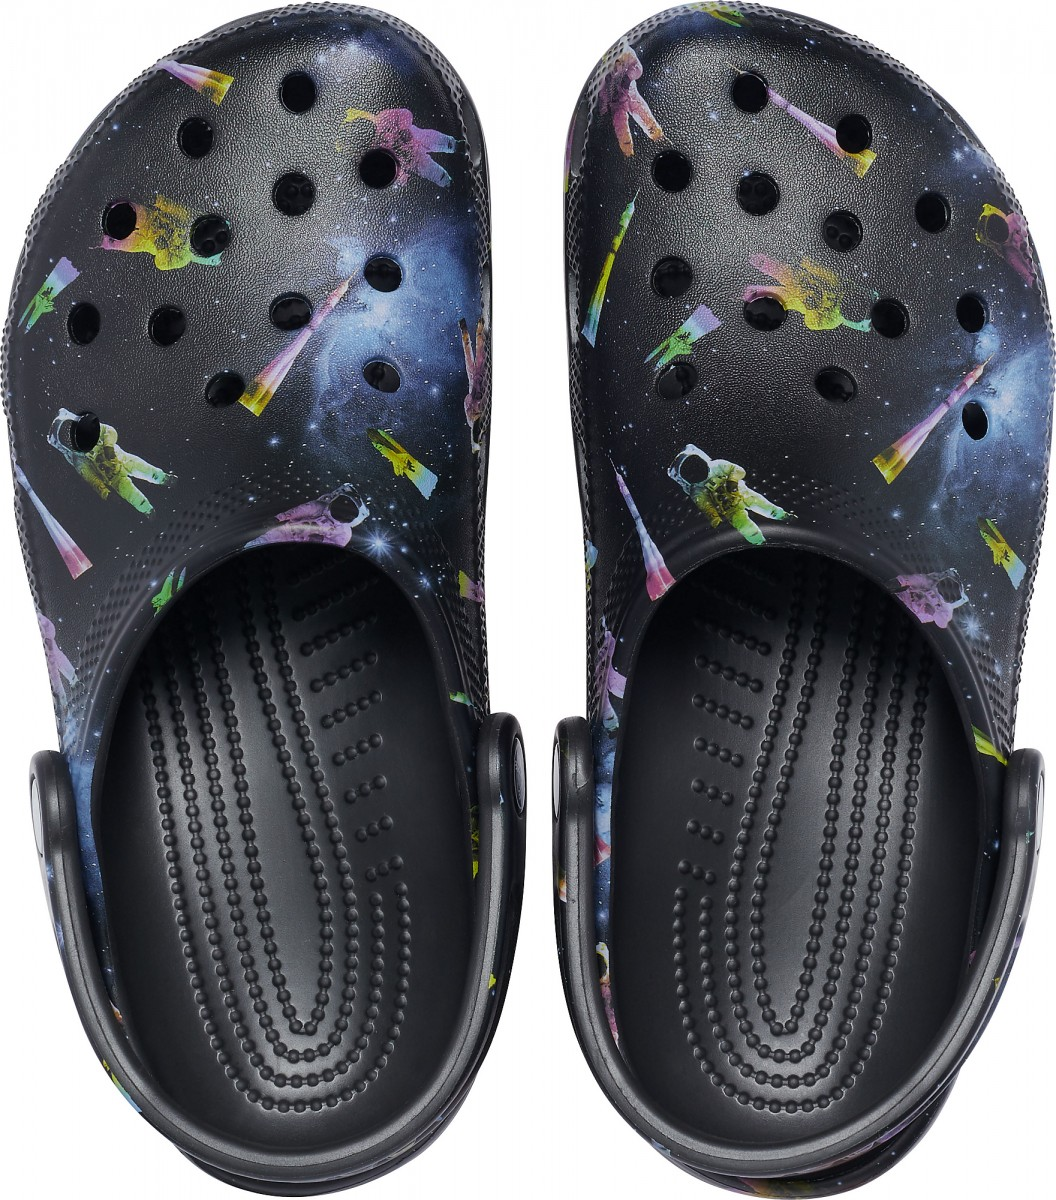 Saboți Adulti Unisex casual Crocs Classic Out of this World II Clog Negri -7